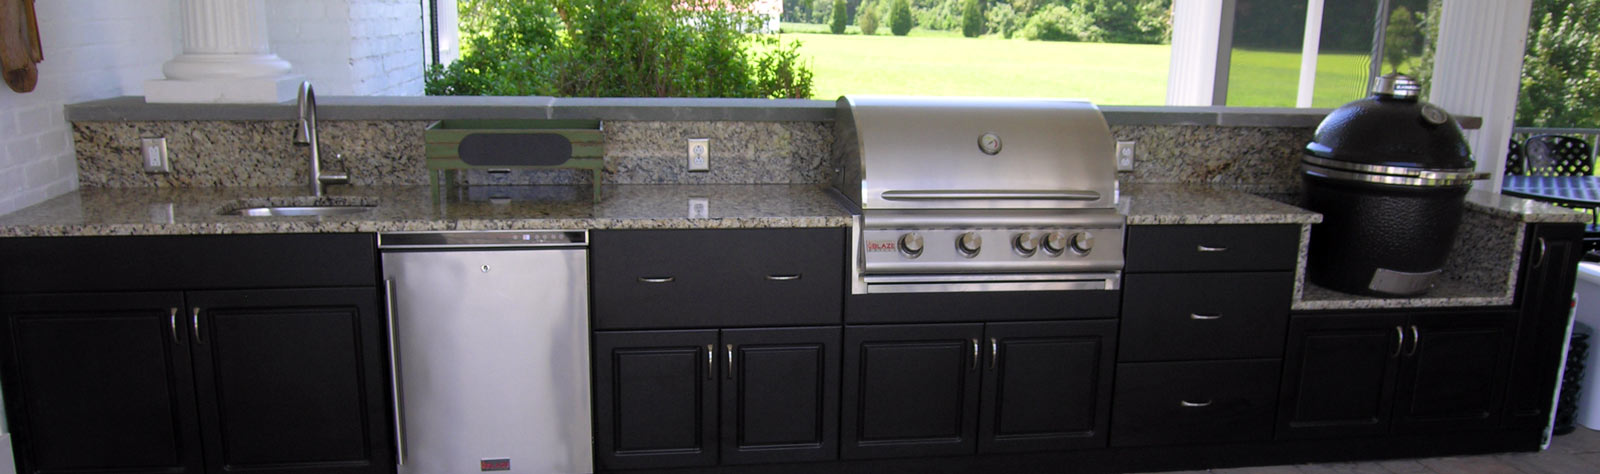 Outdoor Kitchen Creations | Richmond, VA - Your Complete Outdoor ...